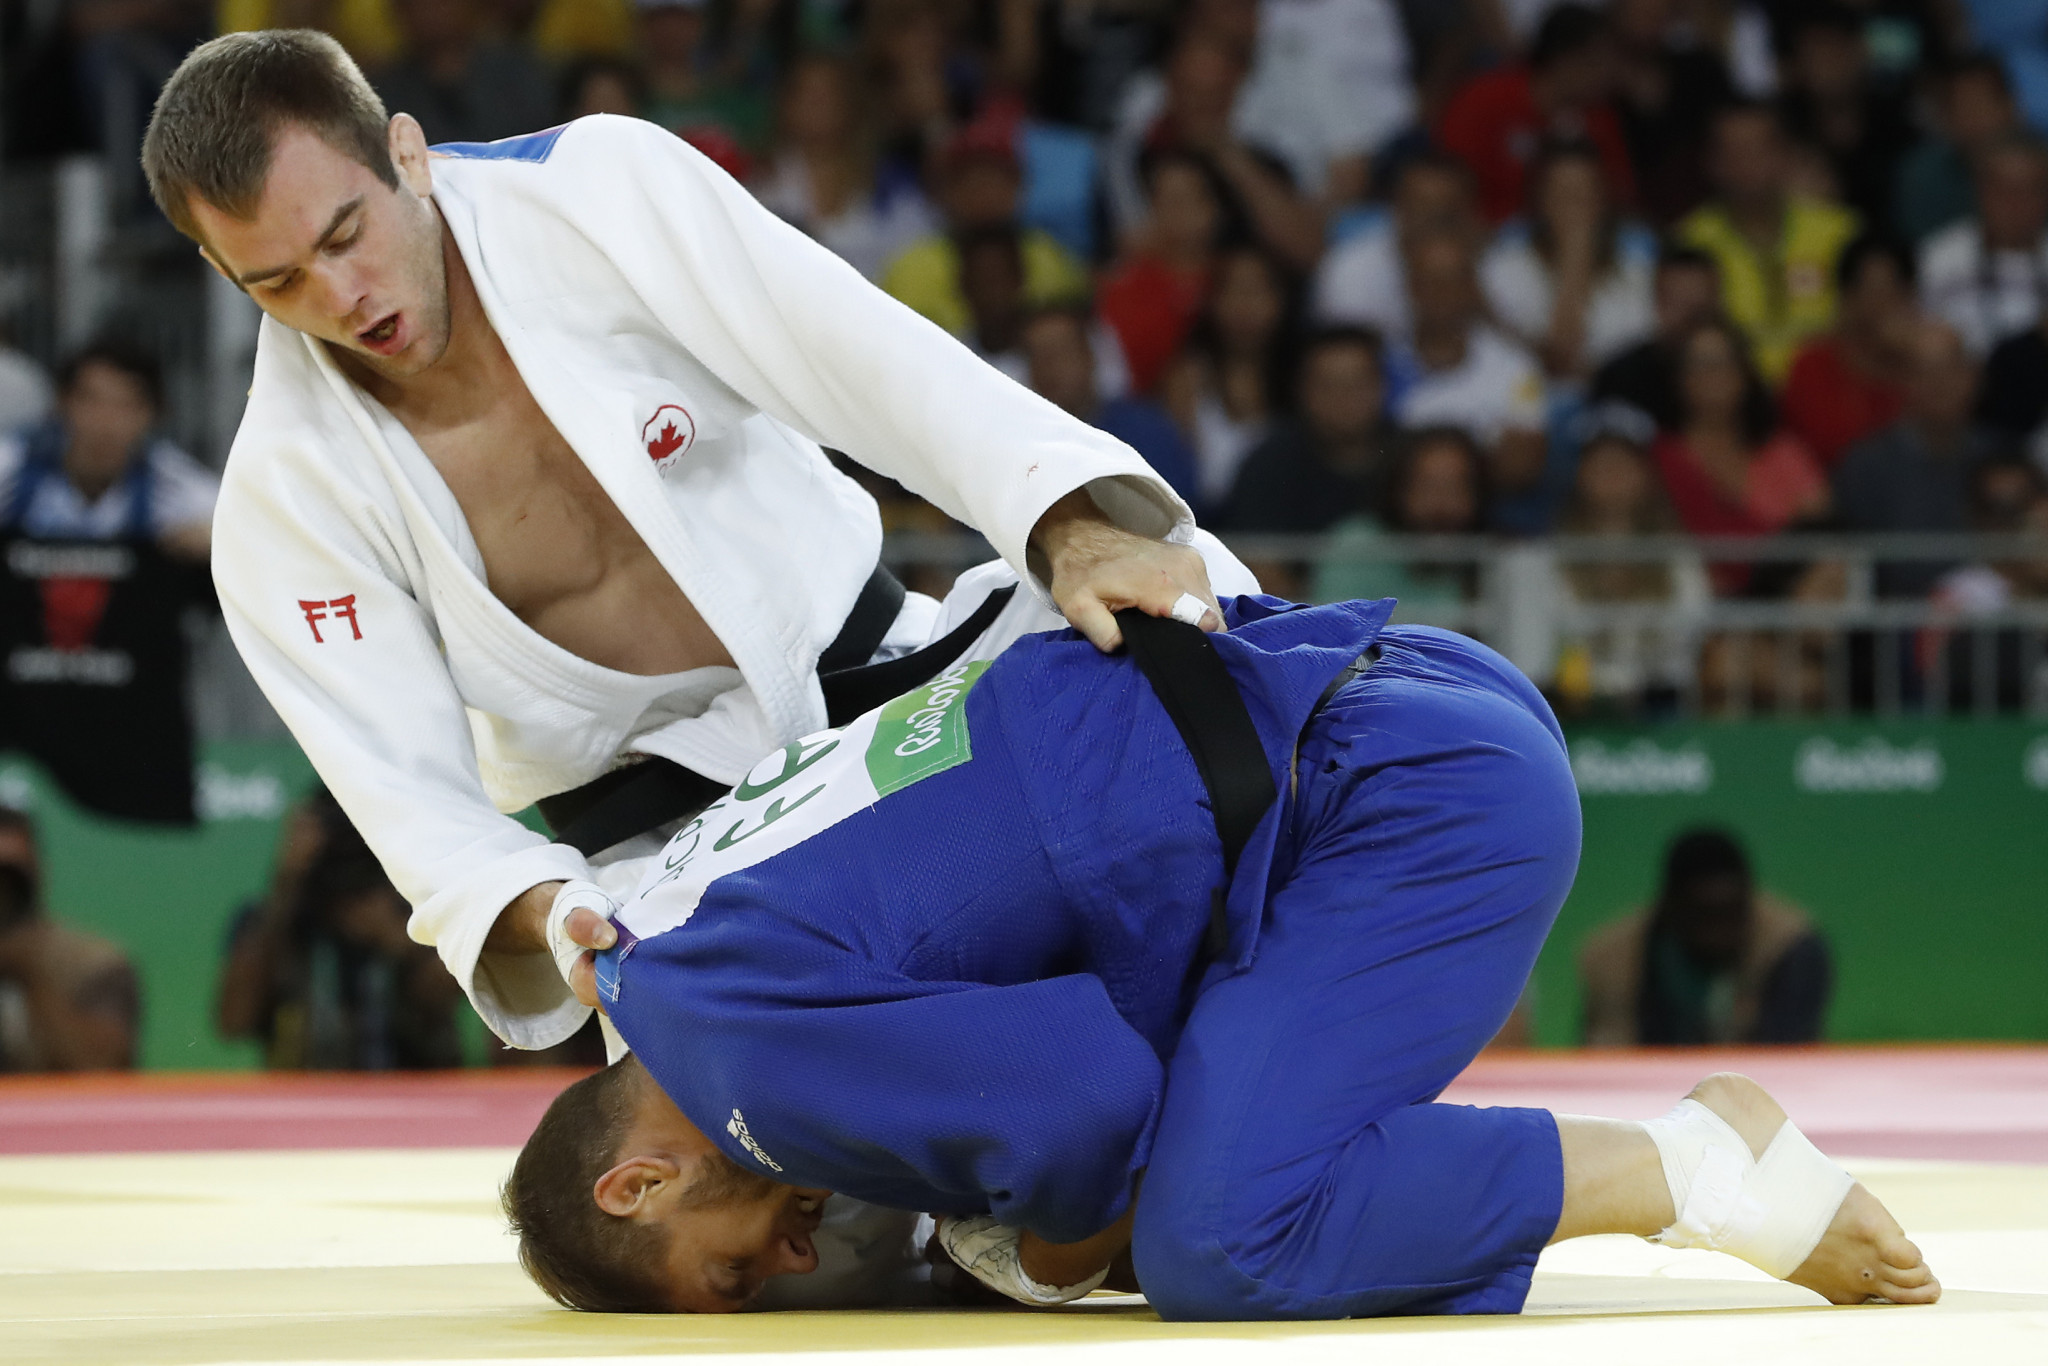 Canada clinch double gold on second day of Pan American Judo Championships in Lima